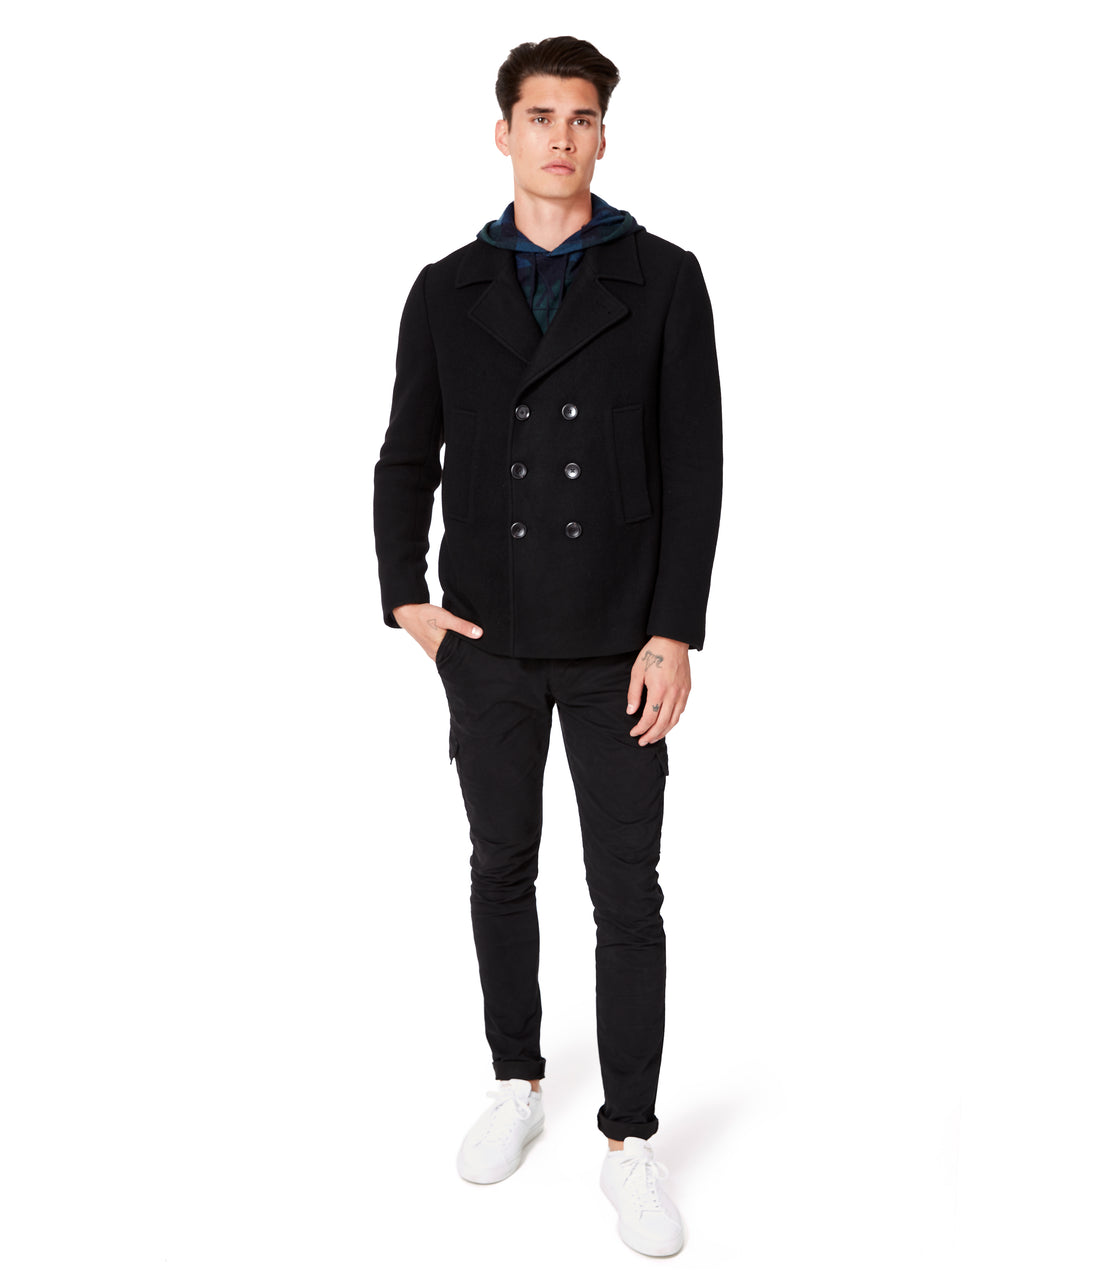 Melton Jersey London Docks Pea Coat - Black - Good Man Brand - Melton Jersey London Docks Pea Coat - Black